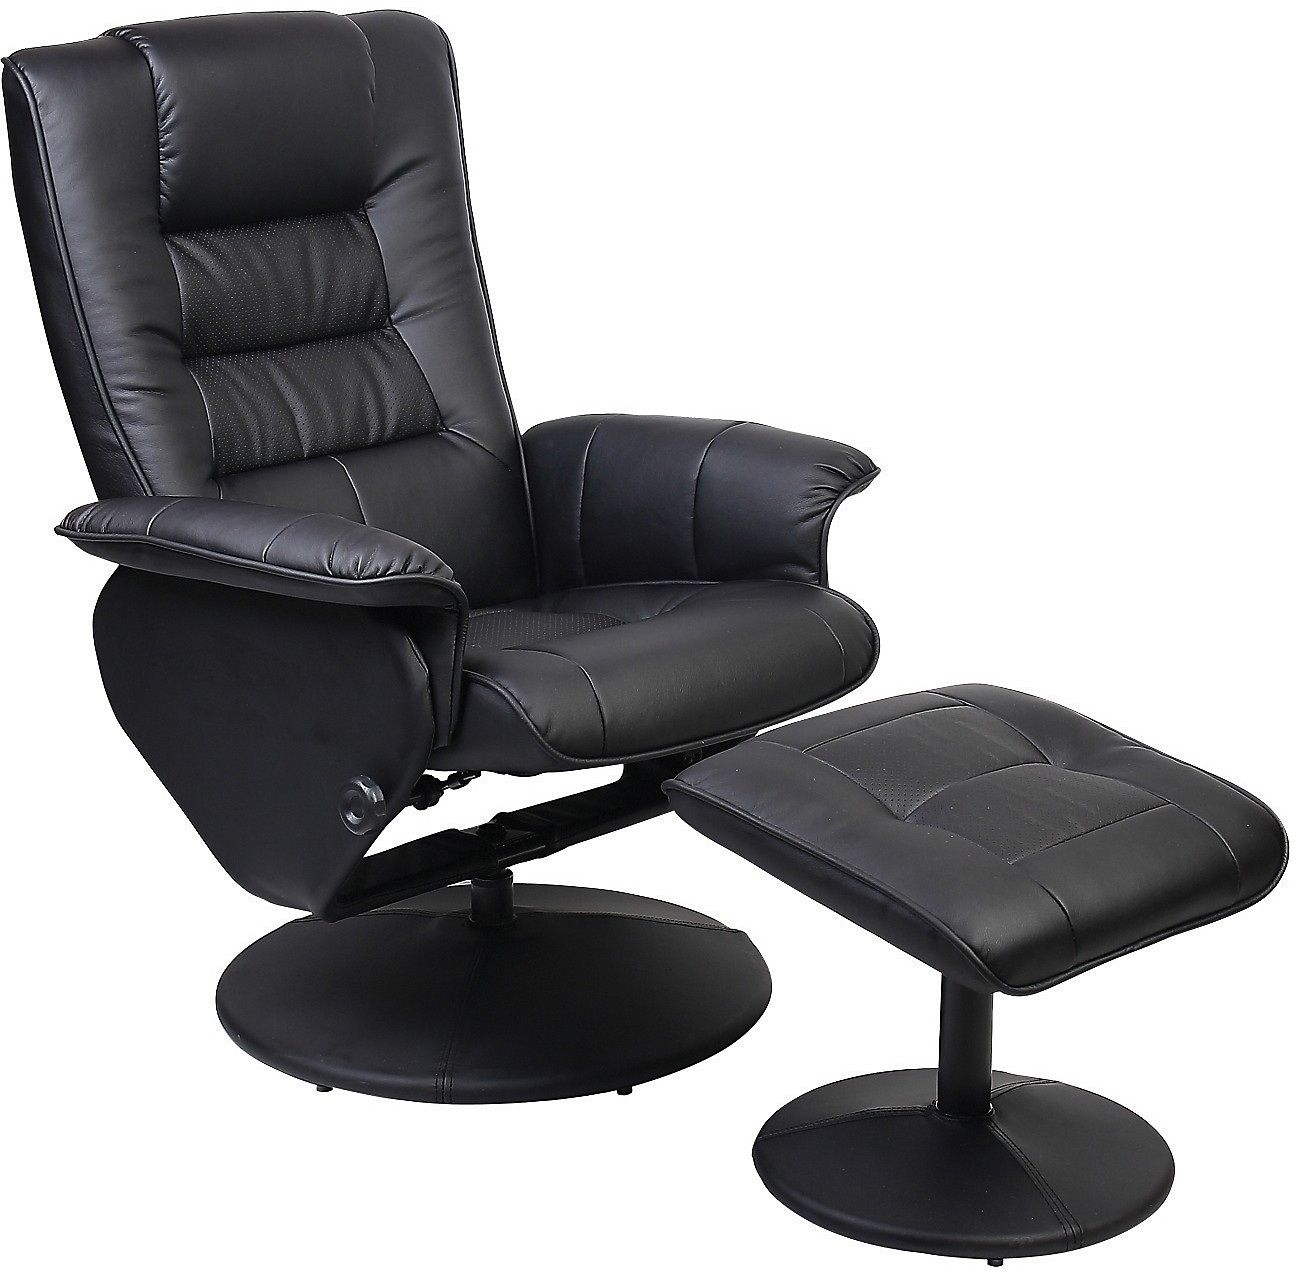 Reclining Office Chair With Ottoman Executive Home Furniture Check More At Http